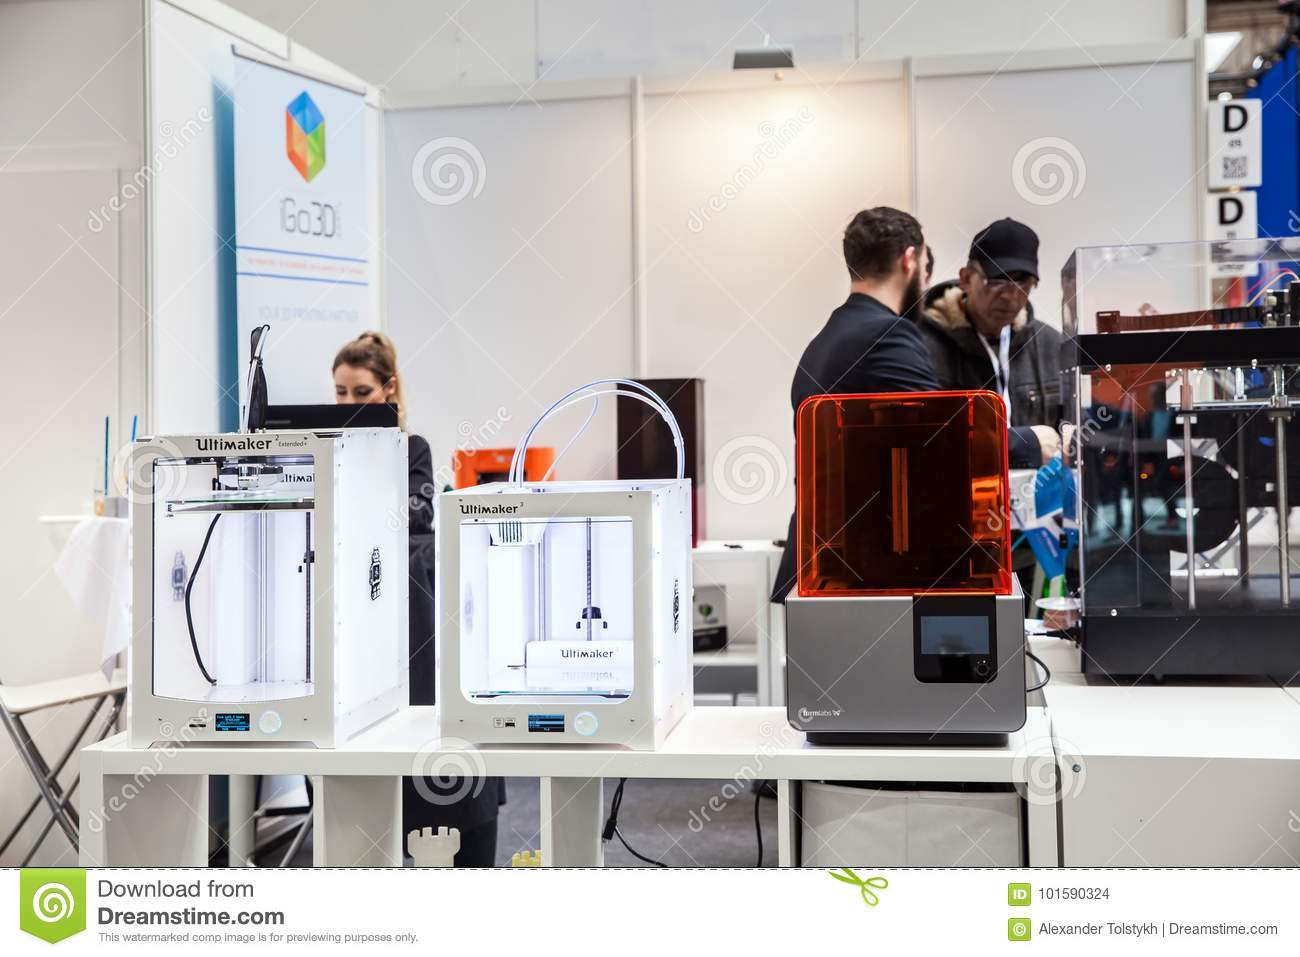 D Printer Exhibition Germany : D printers ultimaker igo d on exhibition cebit in hannover